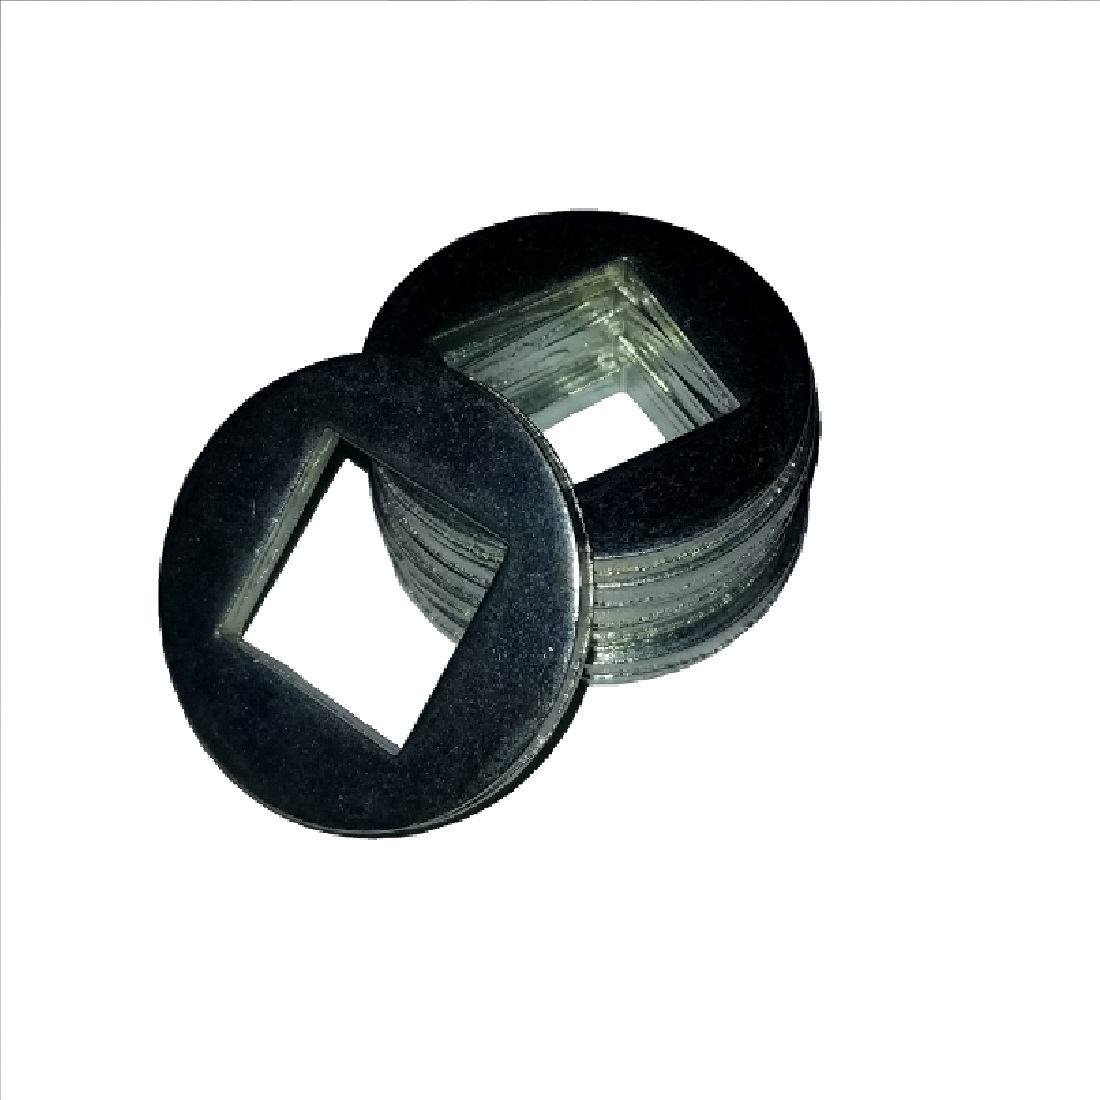 Square ID Washer - 0.687 ID, 1.375 OD, 0.134 Thick, Low Carbon Steel - Soft, Zinc & Clear